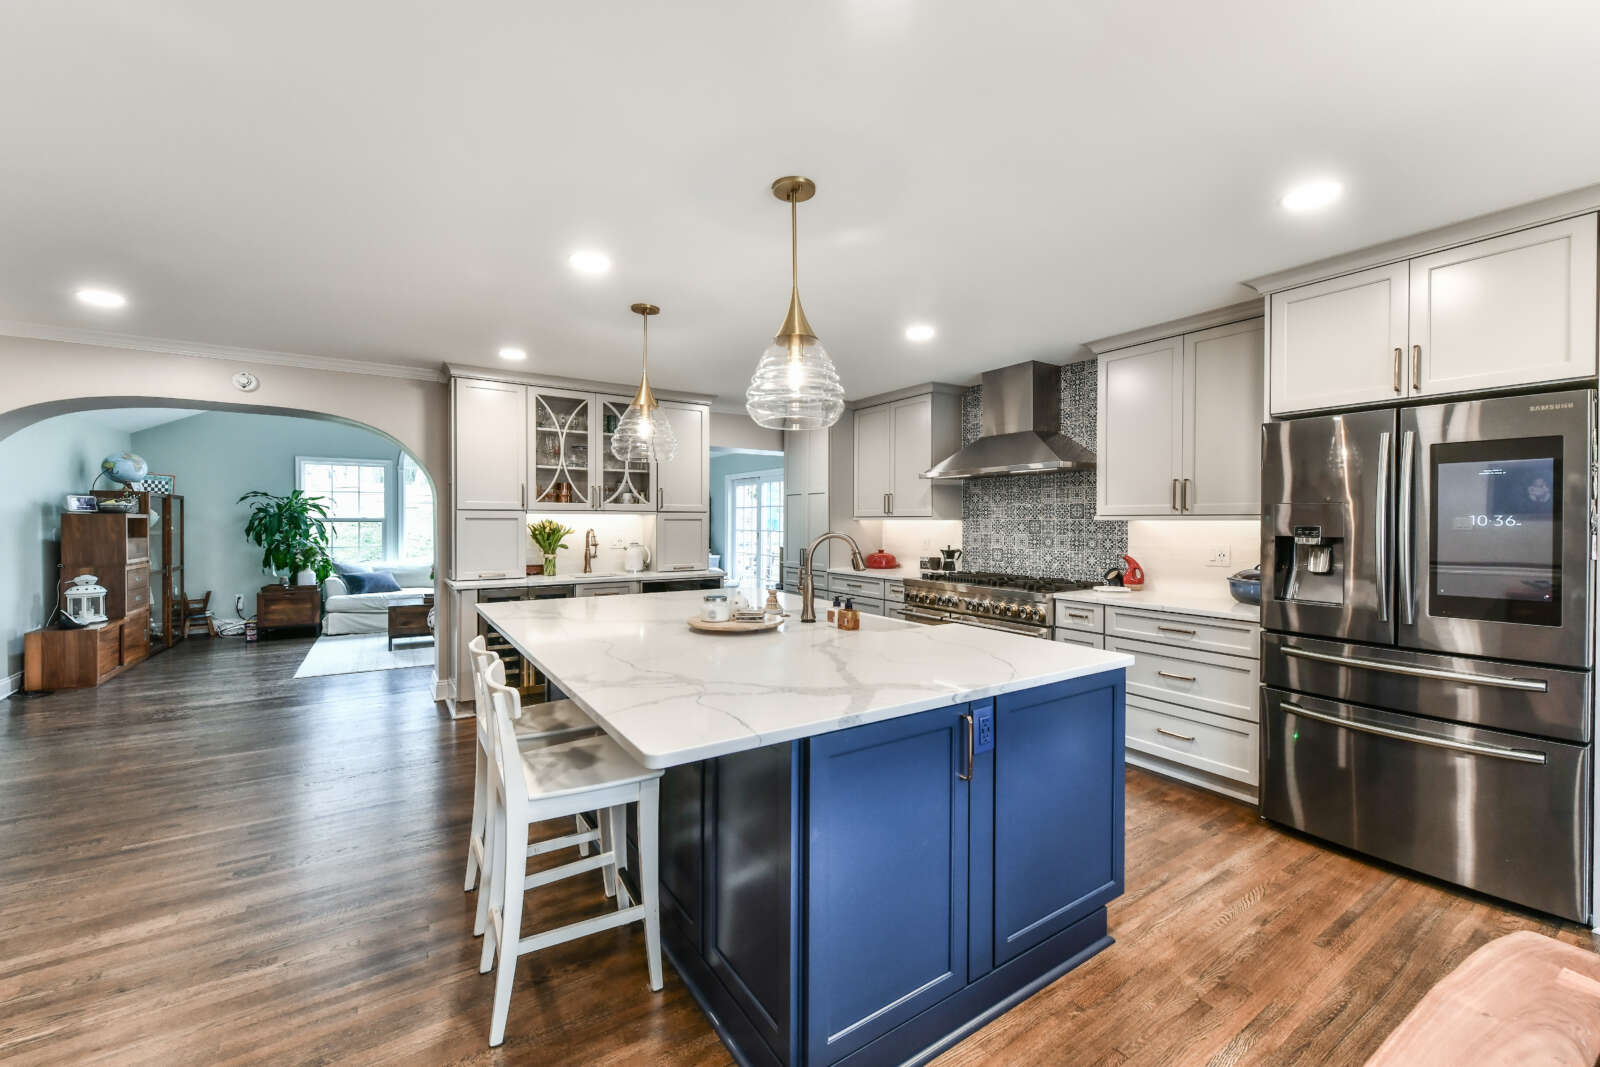 Reno Of The Month How To Reimagine Your Split Level Home Reston Now